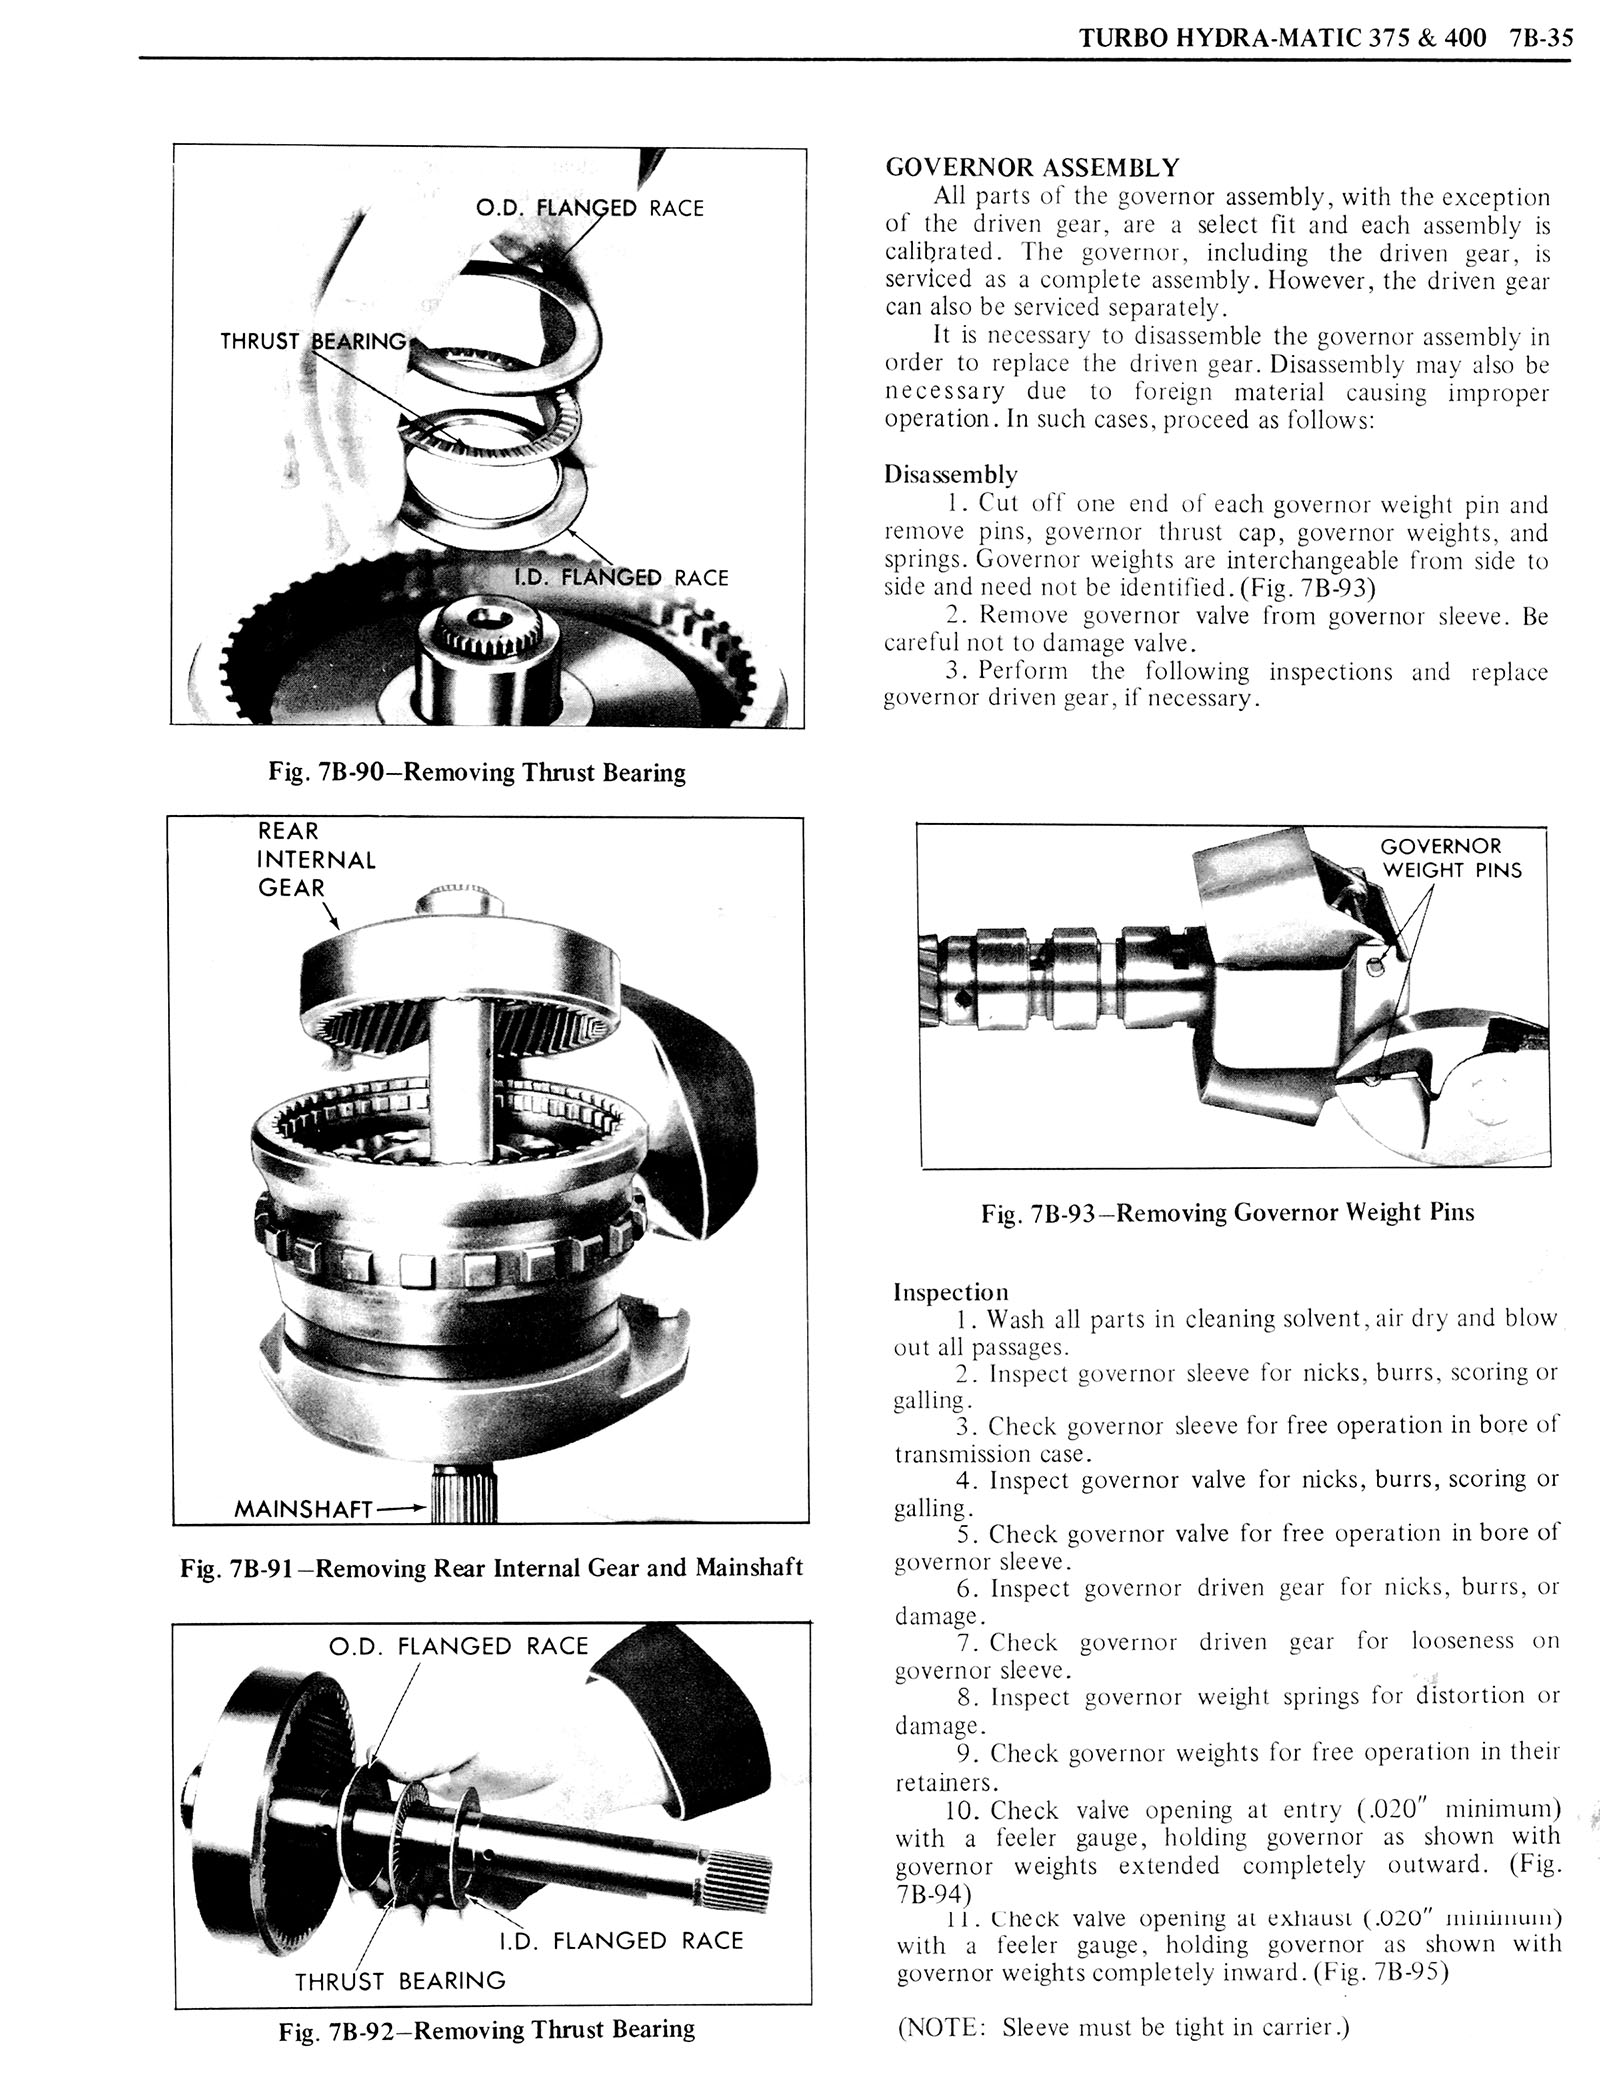 1976 Oldsmobile Service Manual page 767 of 1390